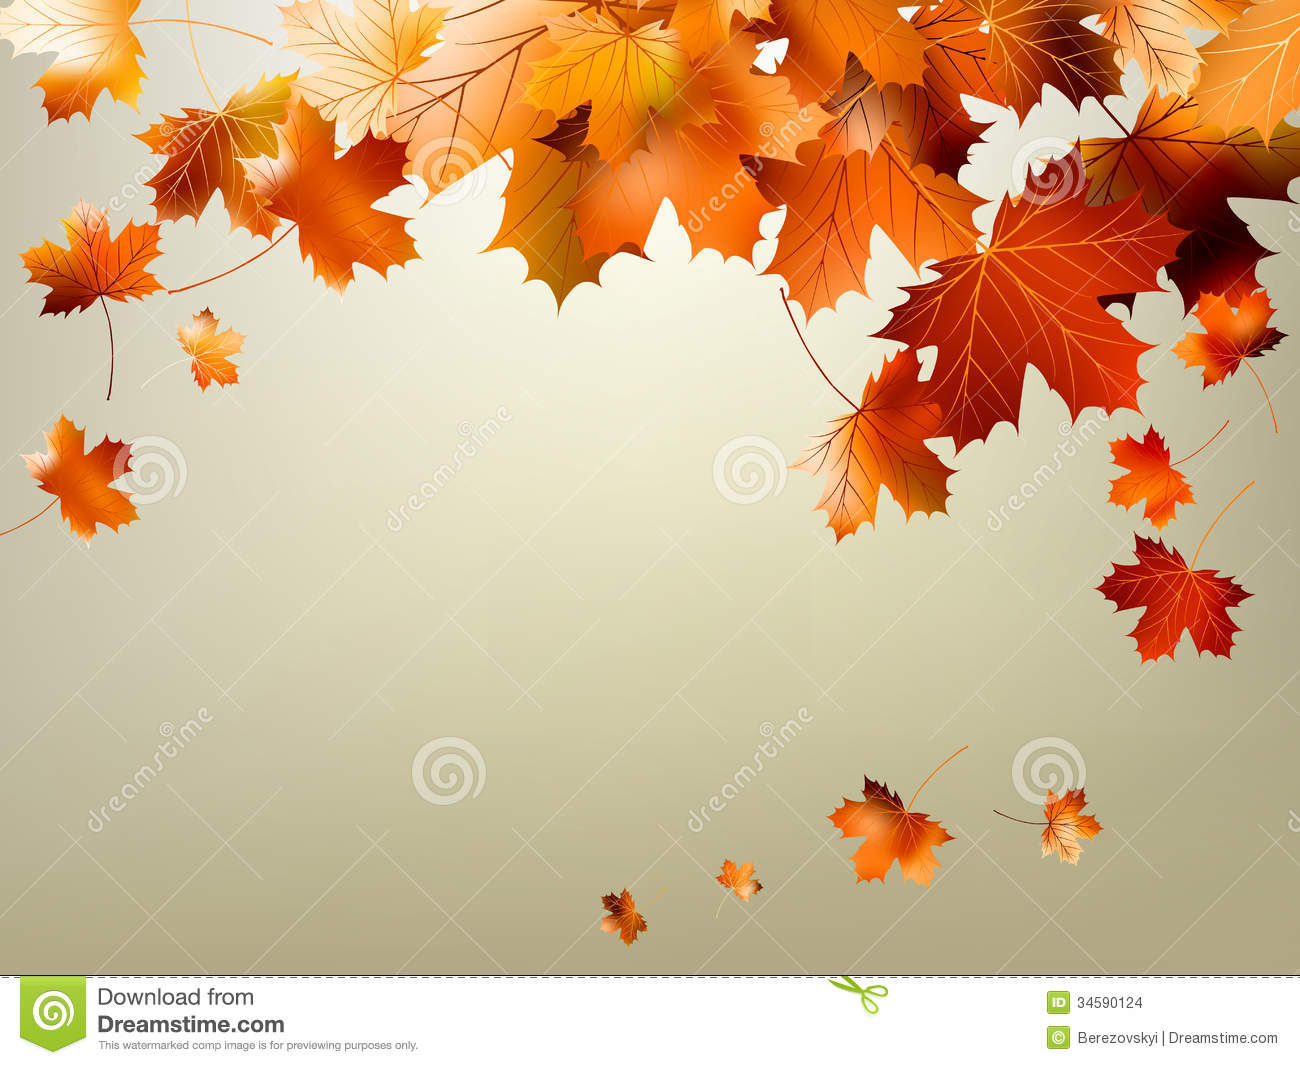 Free Fall Pumpkin Wallpaper Colorful Autumn Leaves Falling Eps 10 Stock Images